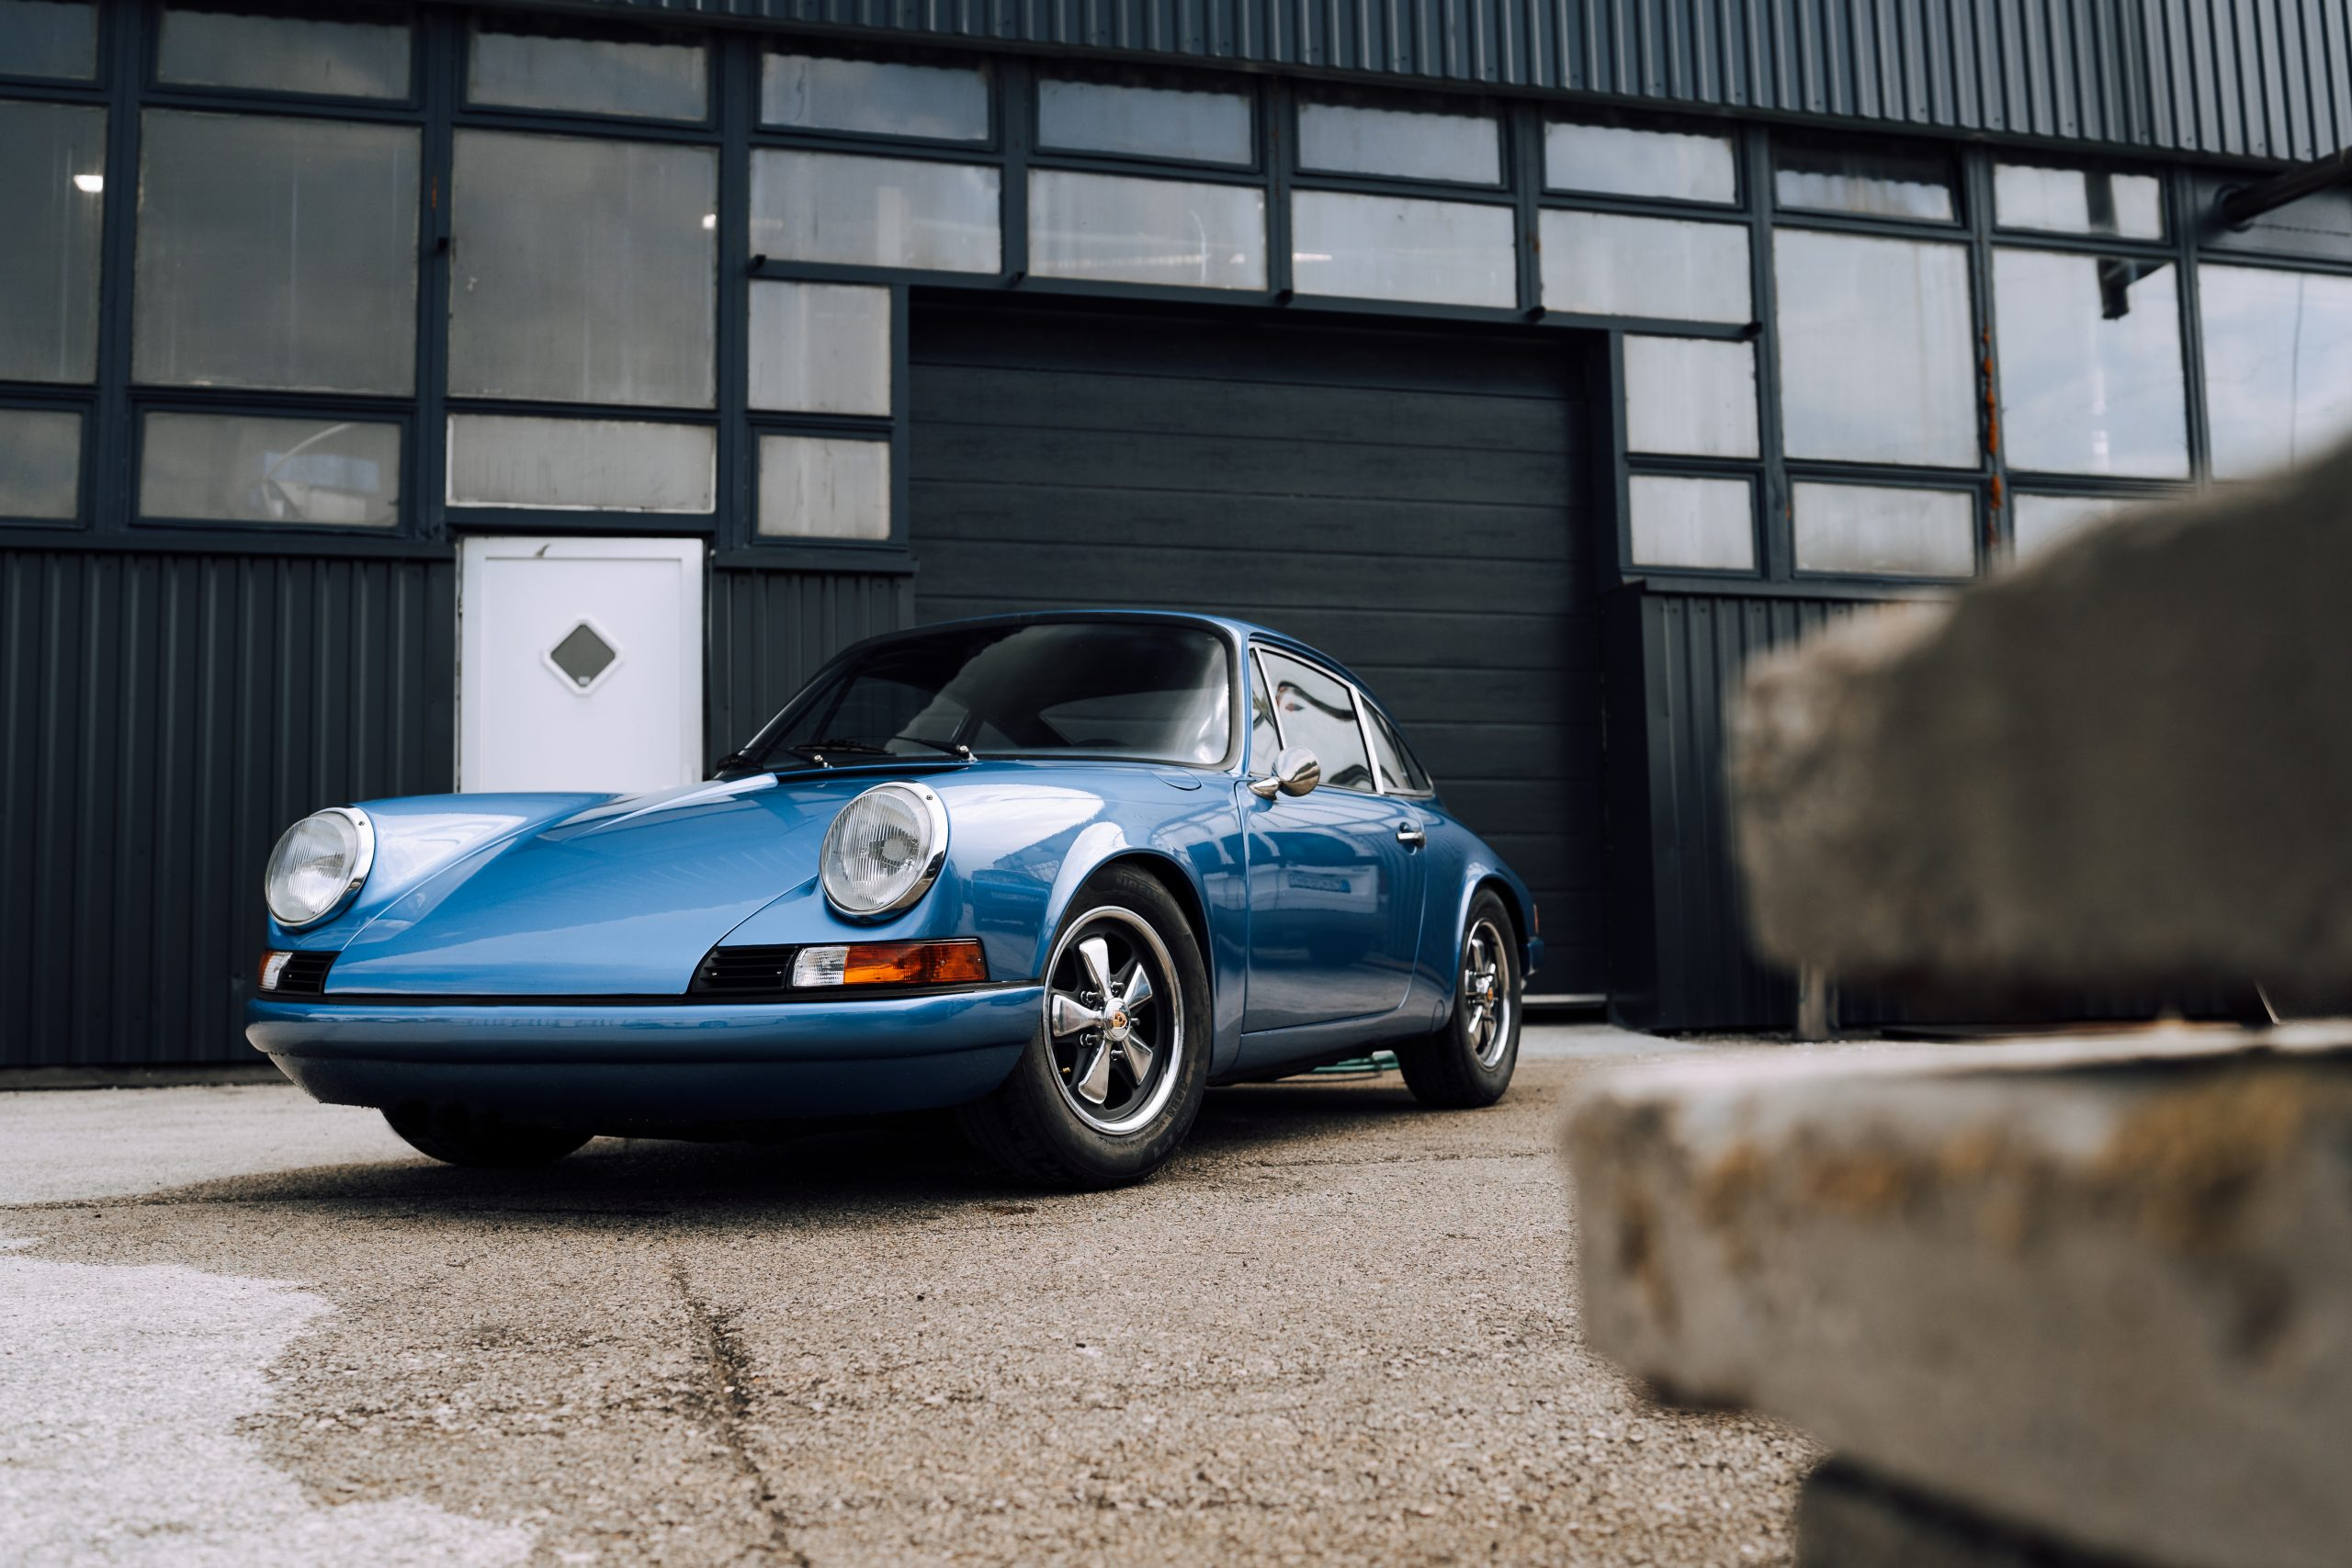 Classic Car Restoration Tips for Beginners